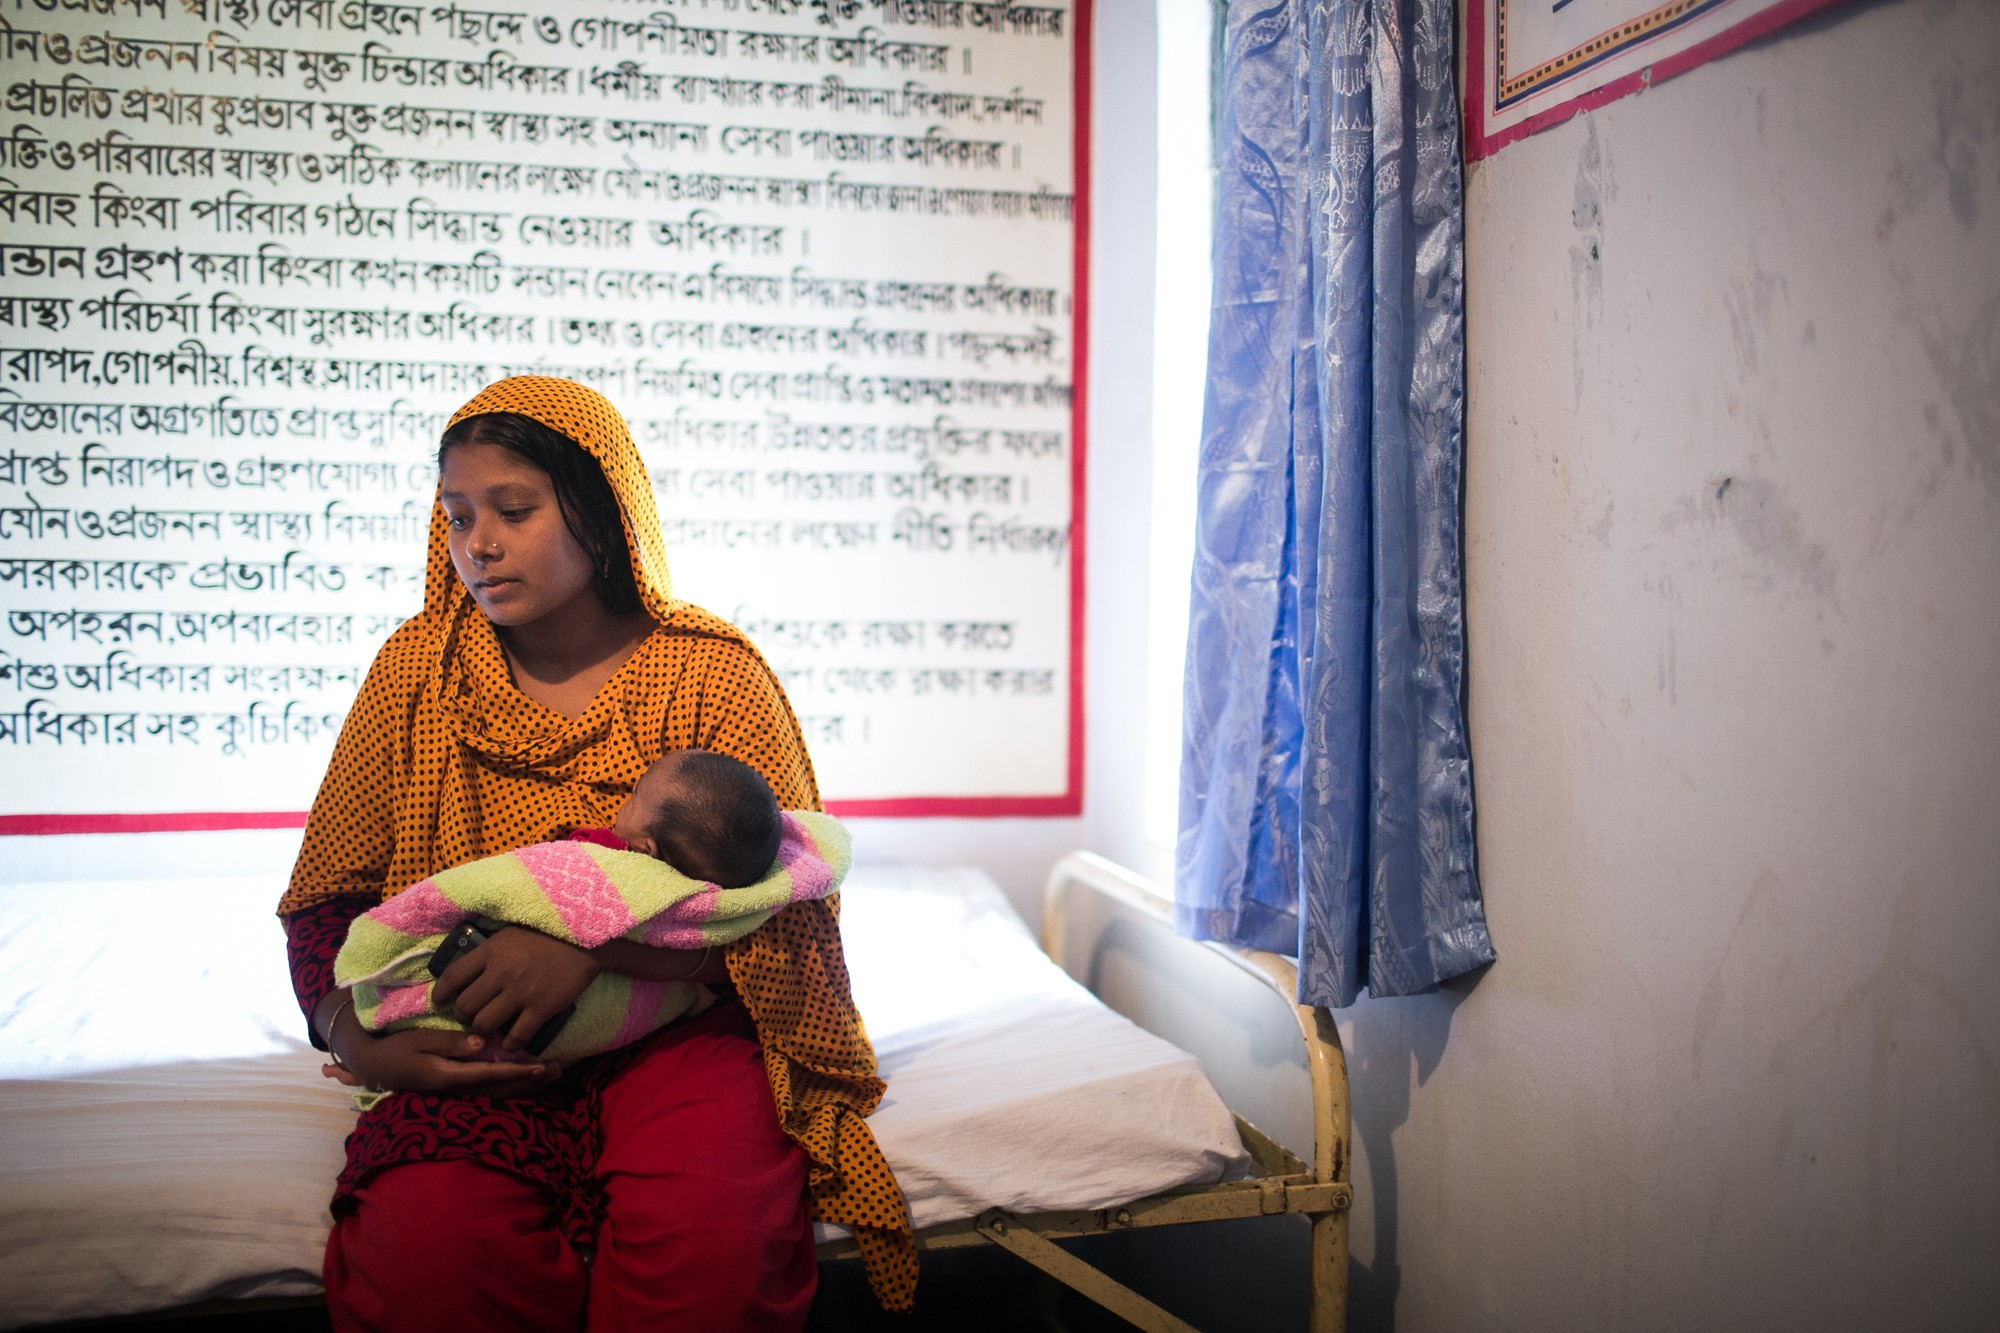 Tohura holding her baby in her arms at her home in Dinajpur region